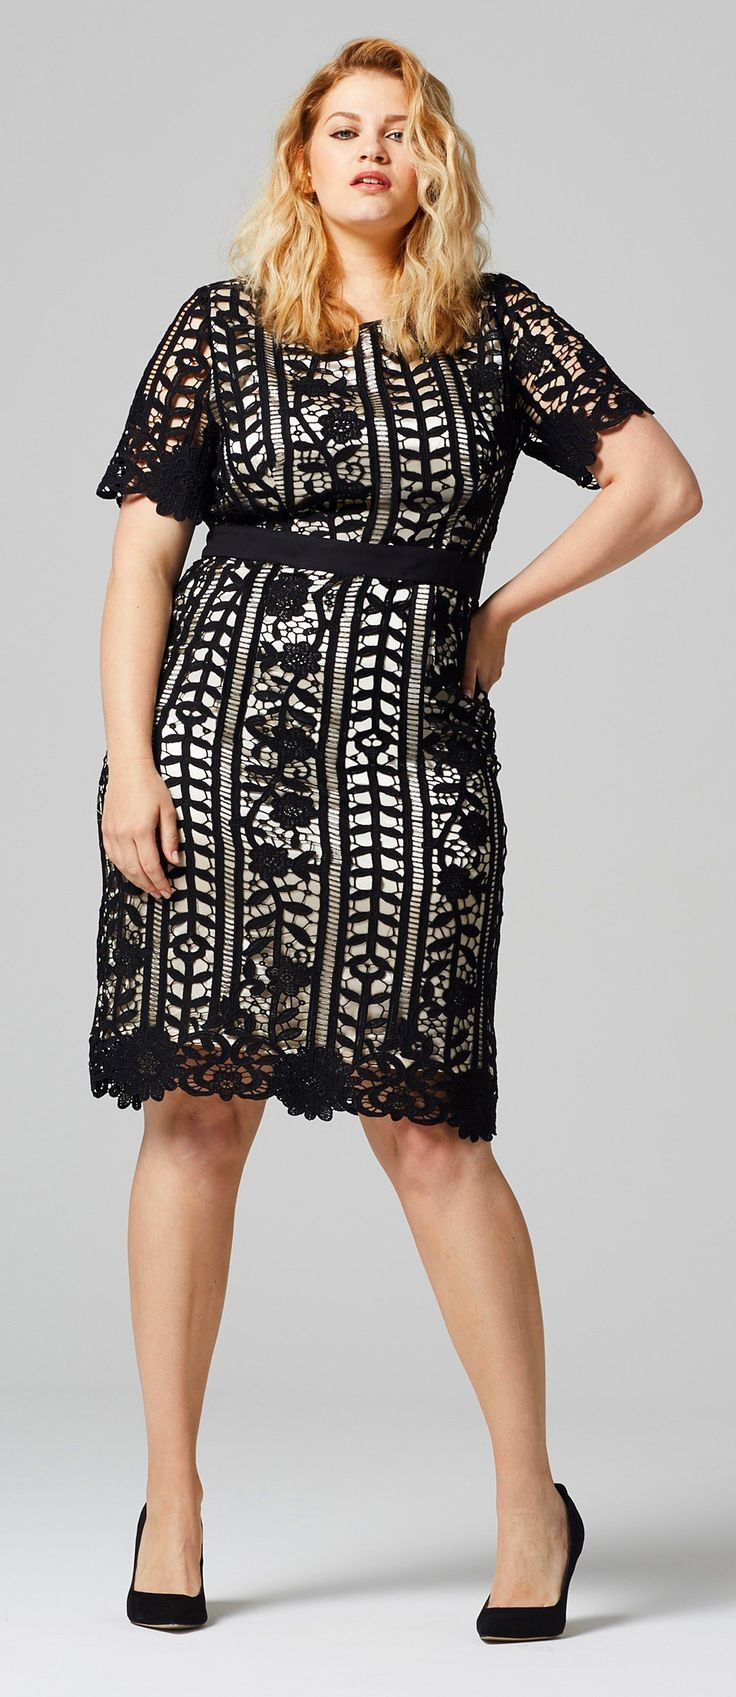 550a1ff58ac 45 Plus Size Wedding Guest Dresses  with Sleeves  - Plus Size Cocktail  Dresses - alexawebb.com